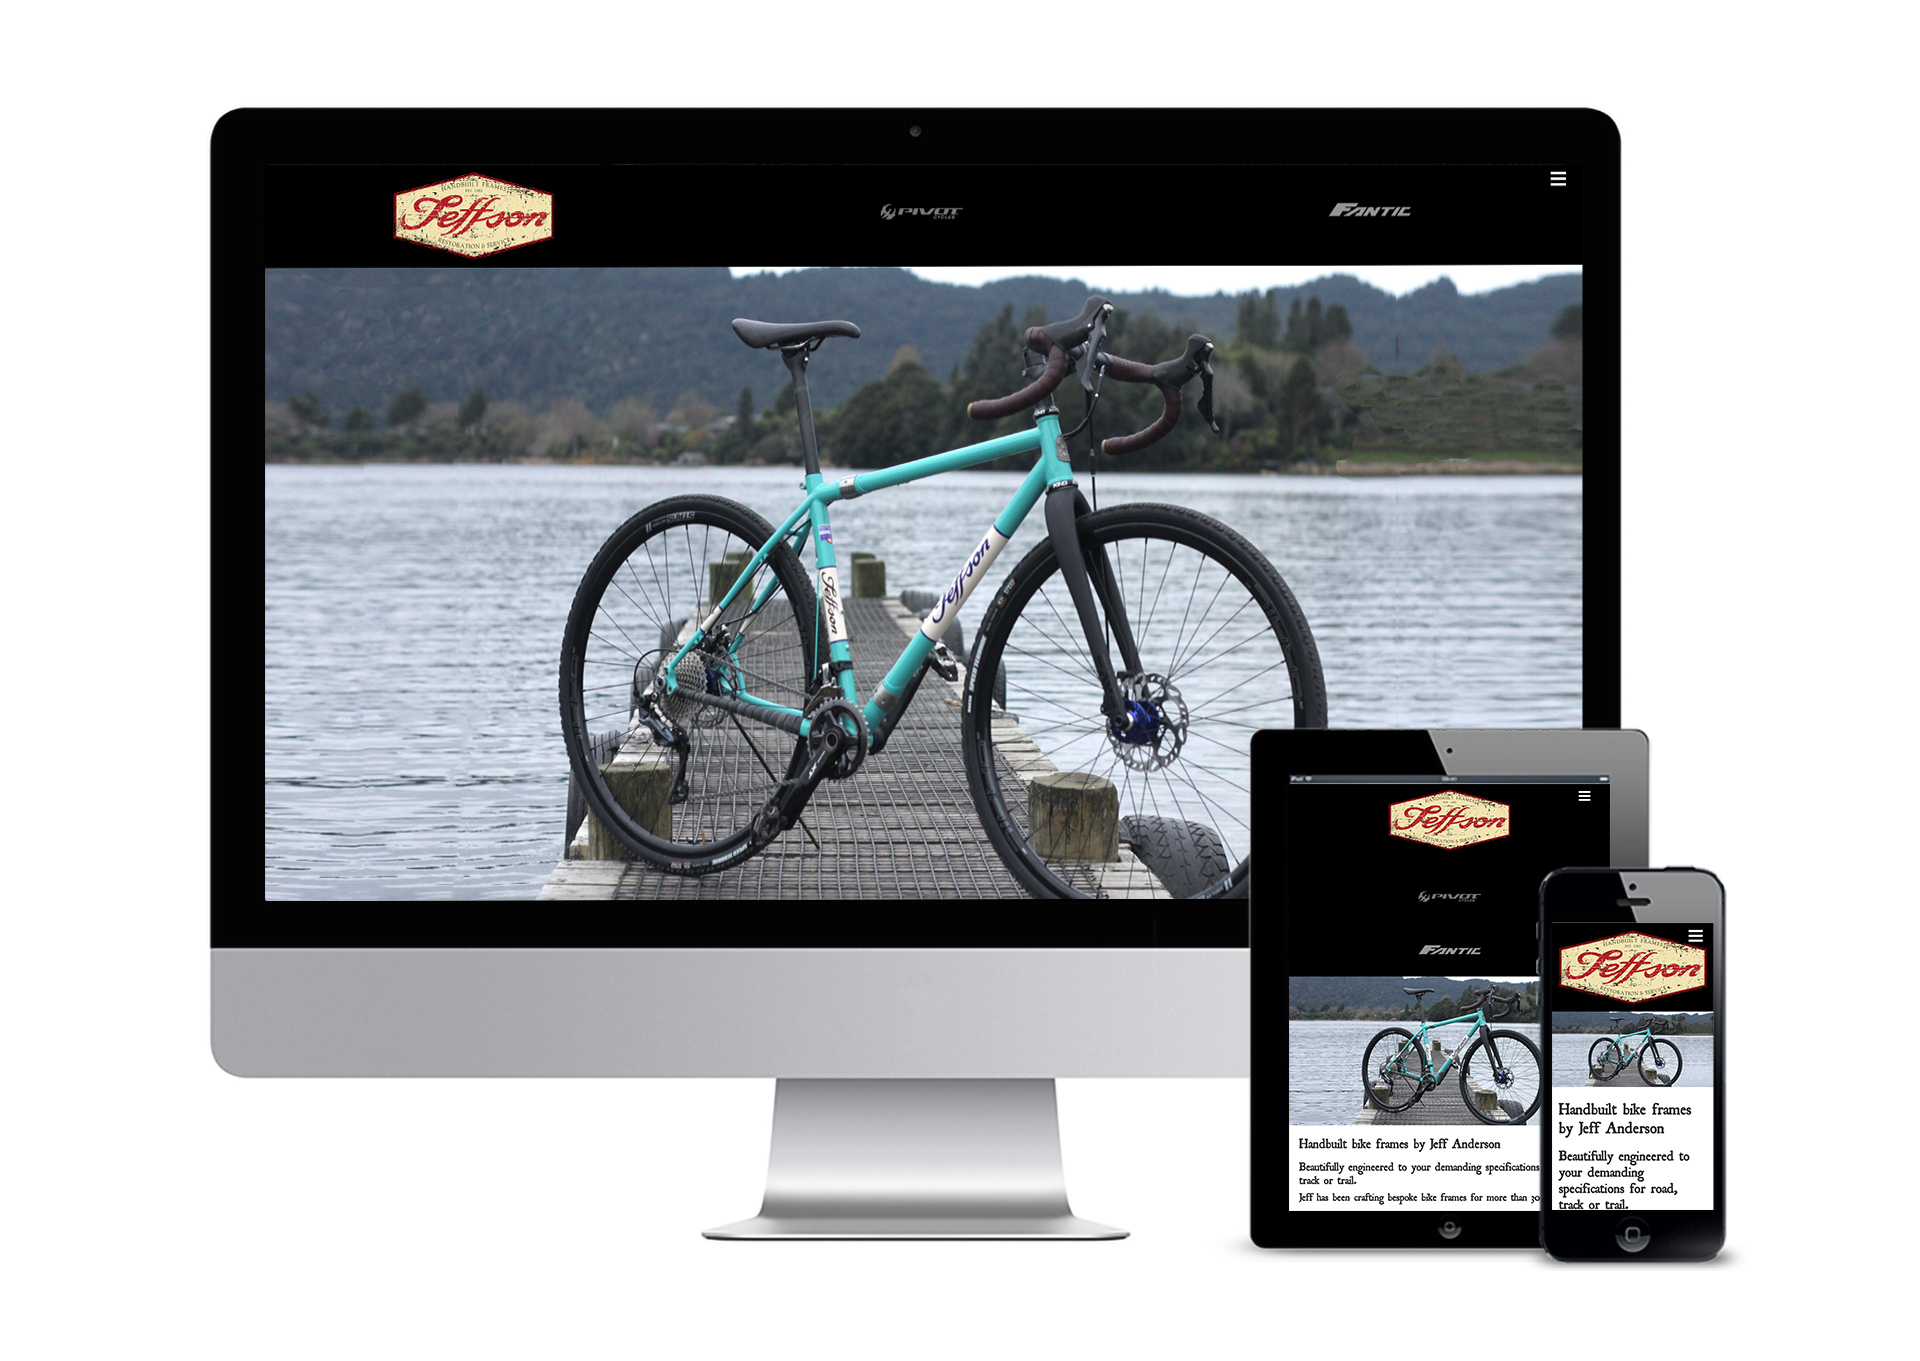 jeffson-bikes-website.jpg